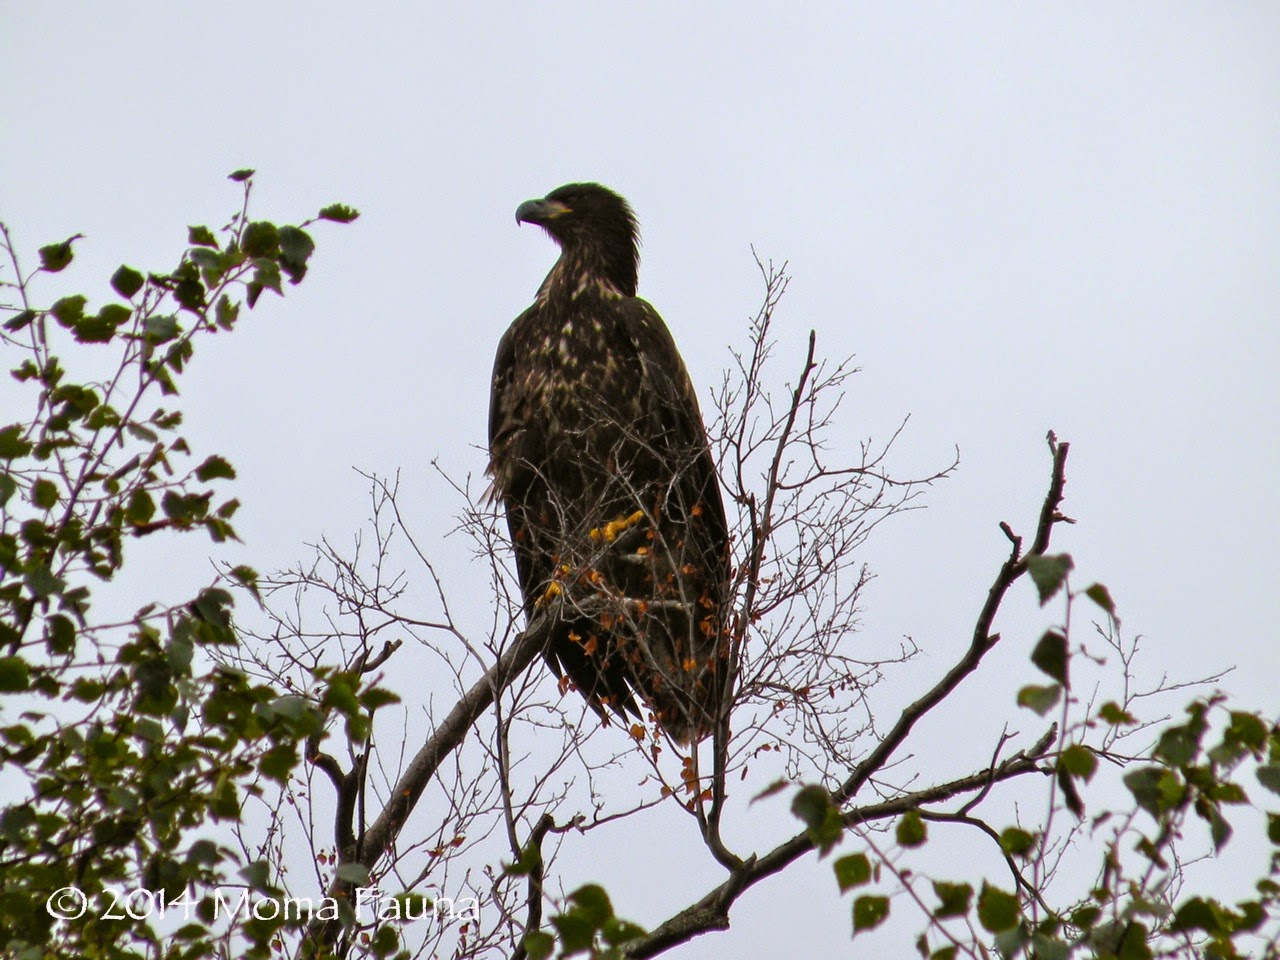 Bald Eagle (Haliaeetus leucocephalus), immature.  Also brown. Also not a fungi.